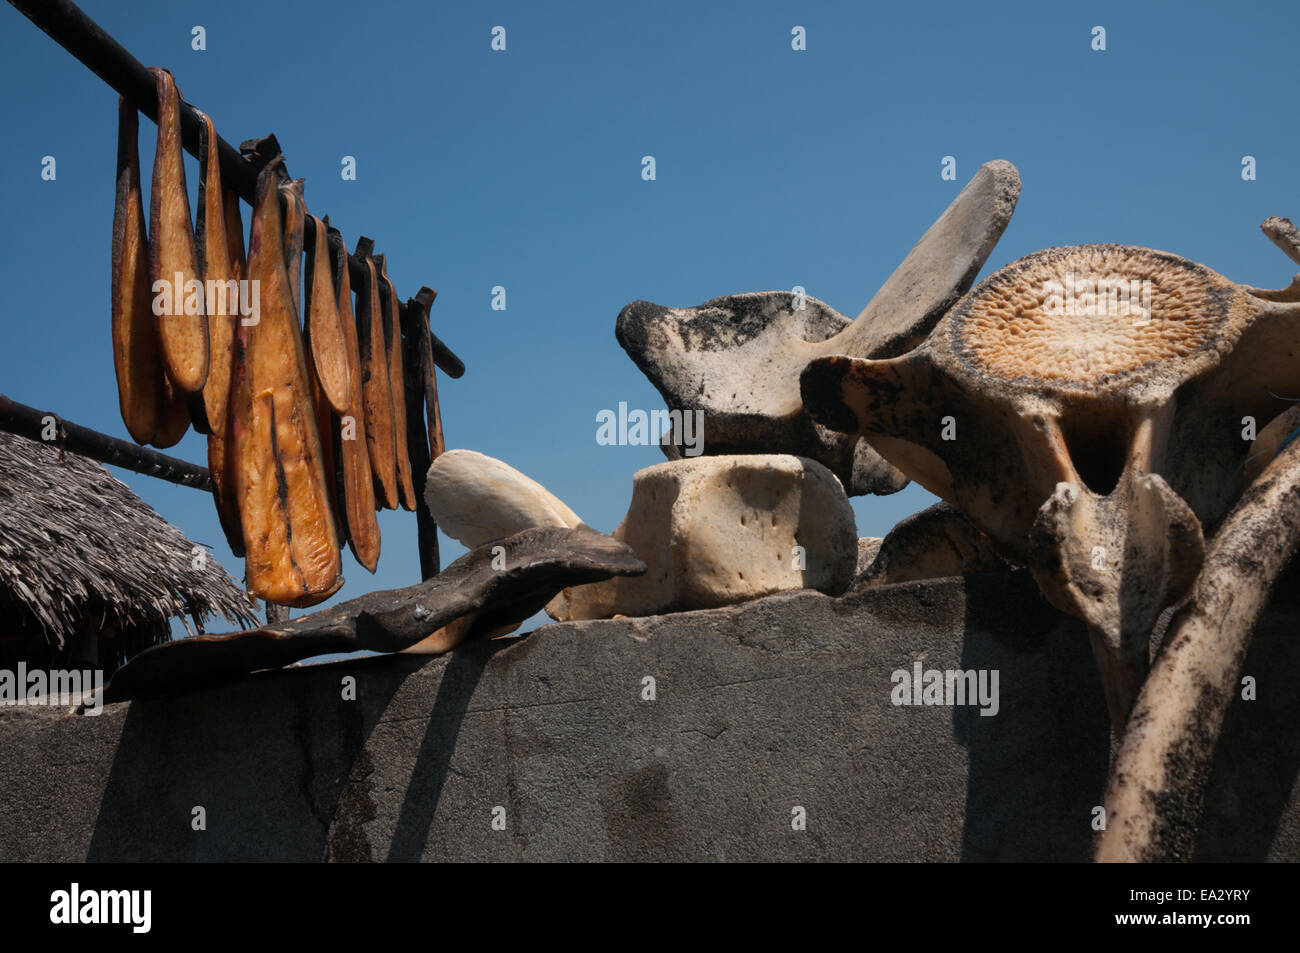 Whale meats and bones dried up under the sun, a regular view at Lamalera village, Lembata Island, Indonesia. - Stock Image